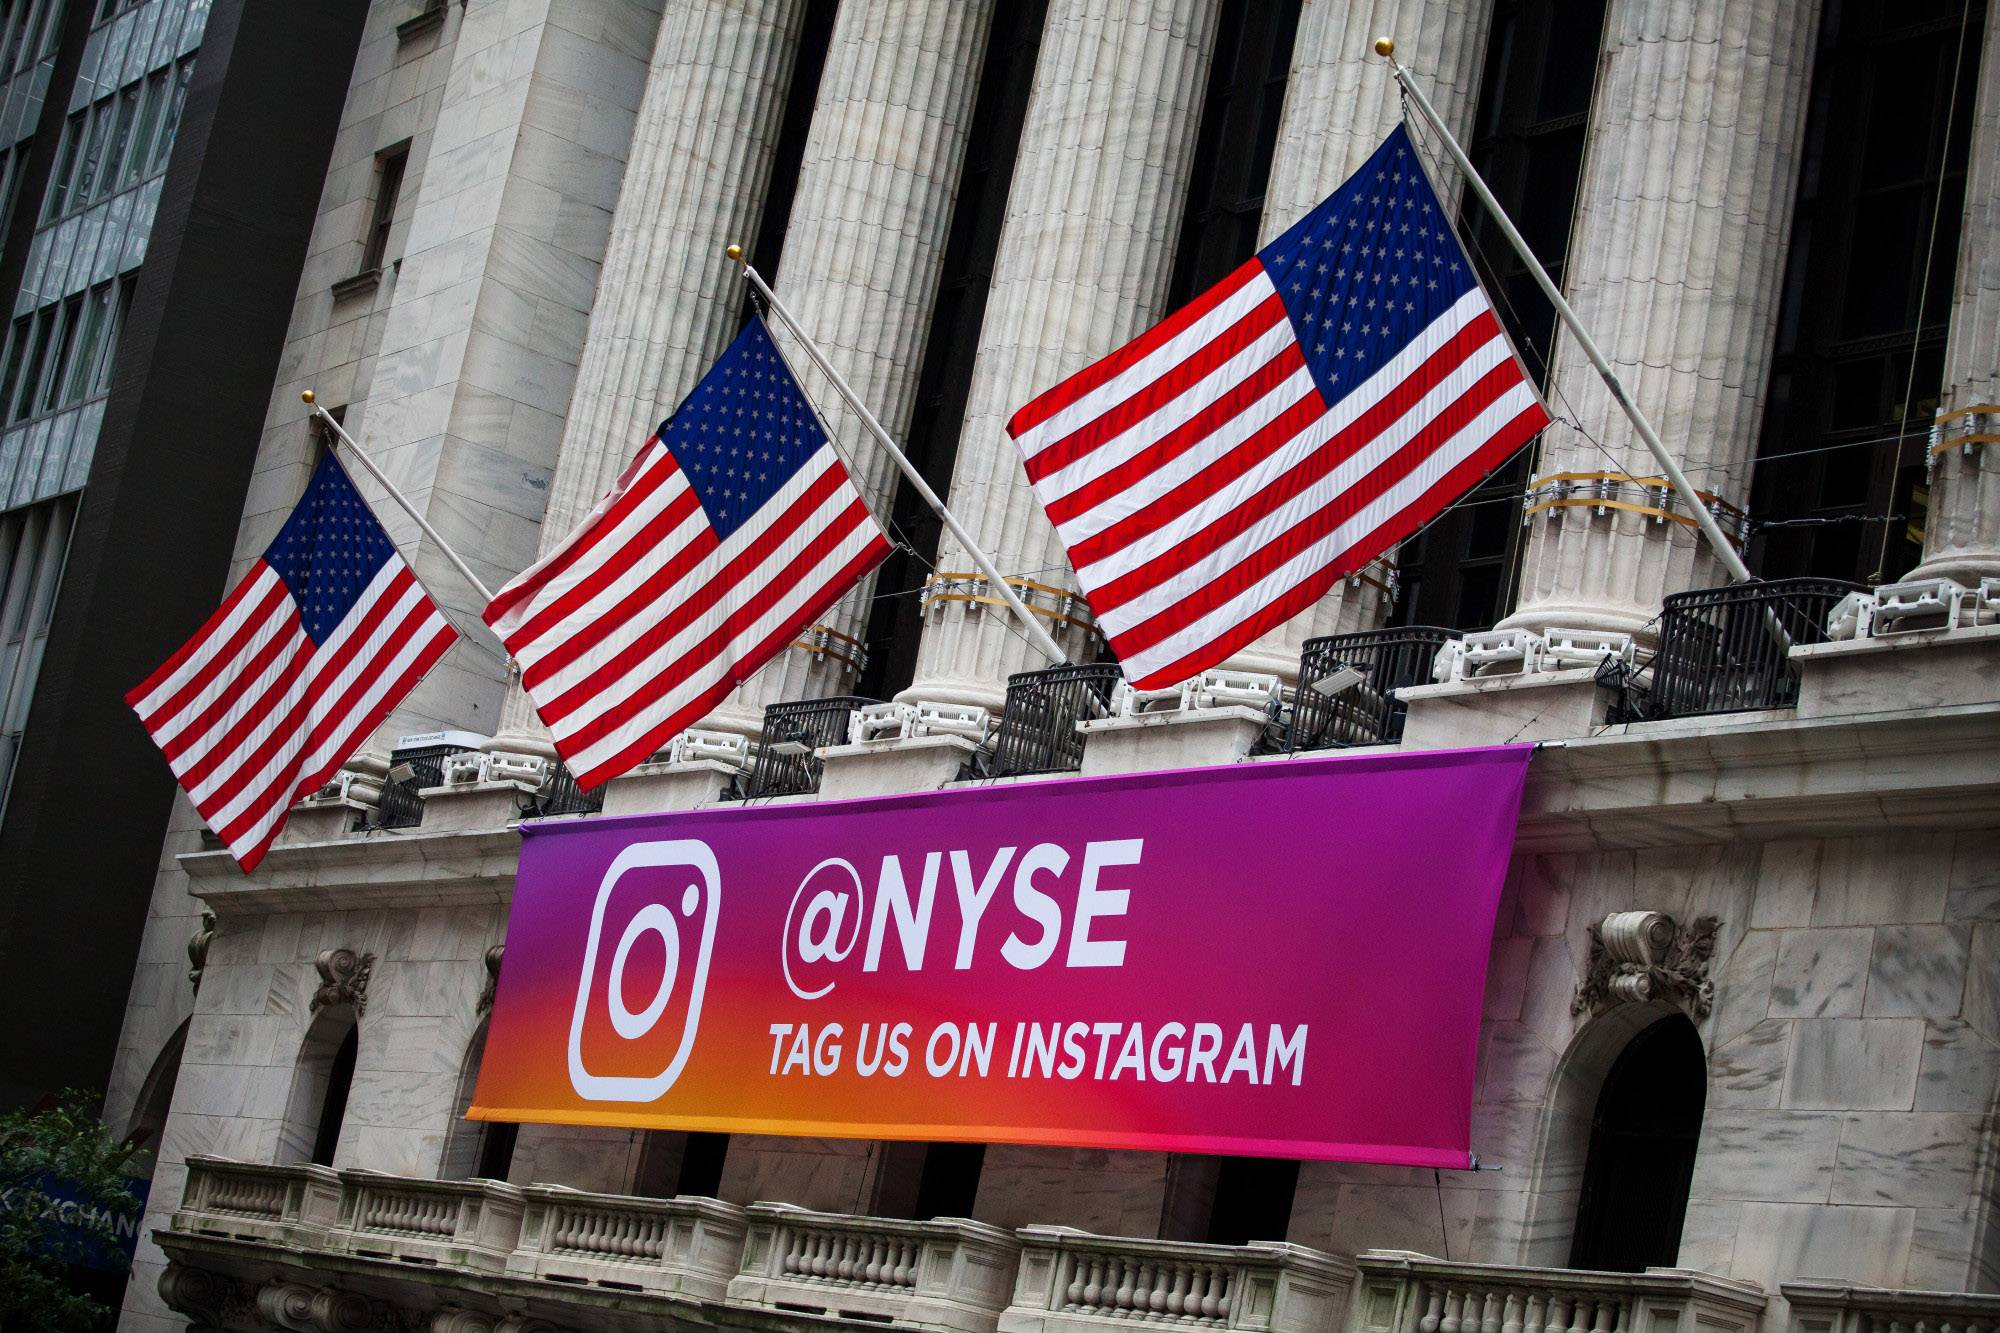 An Instagram banner hangs below American flags flying outside of the New York Stock Exchange in New York on Sept. 14, 2018.